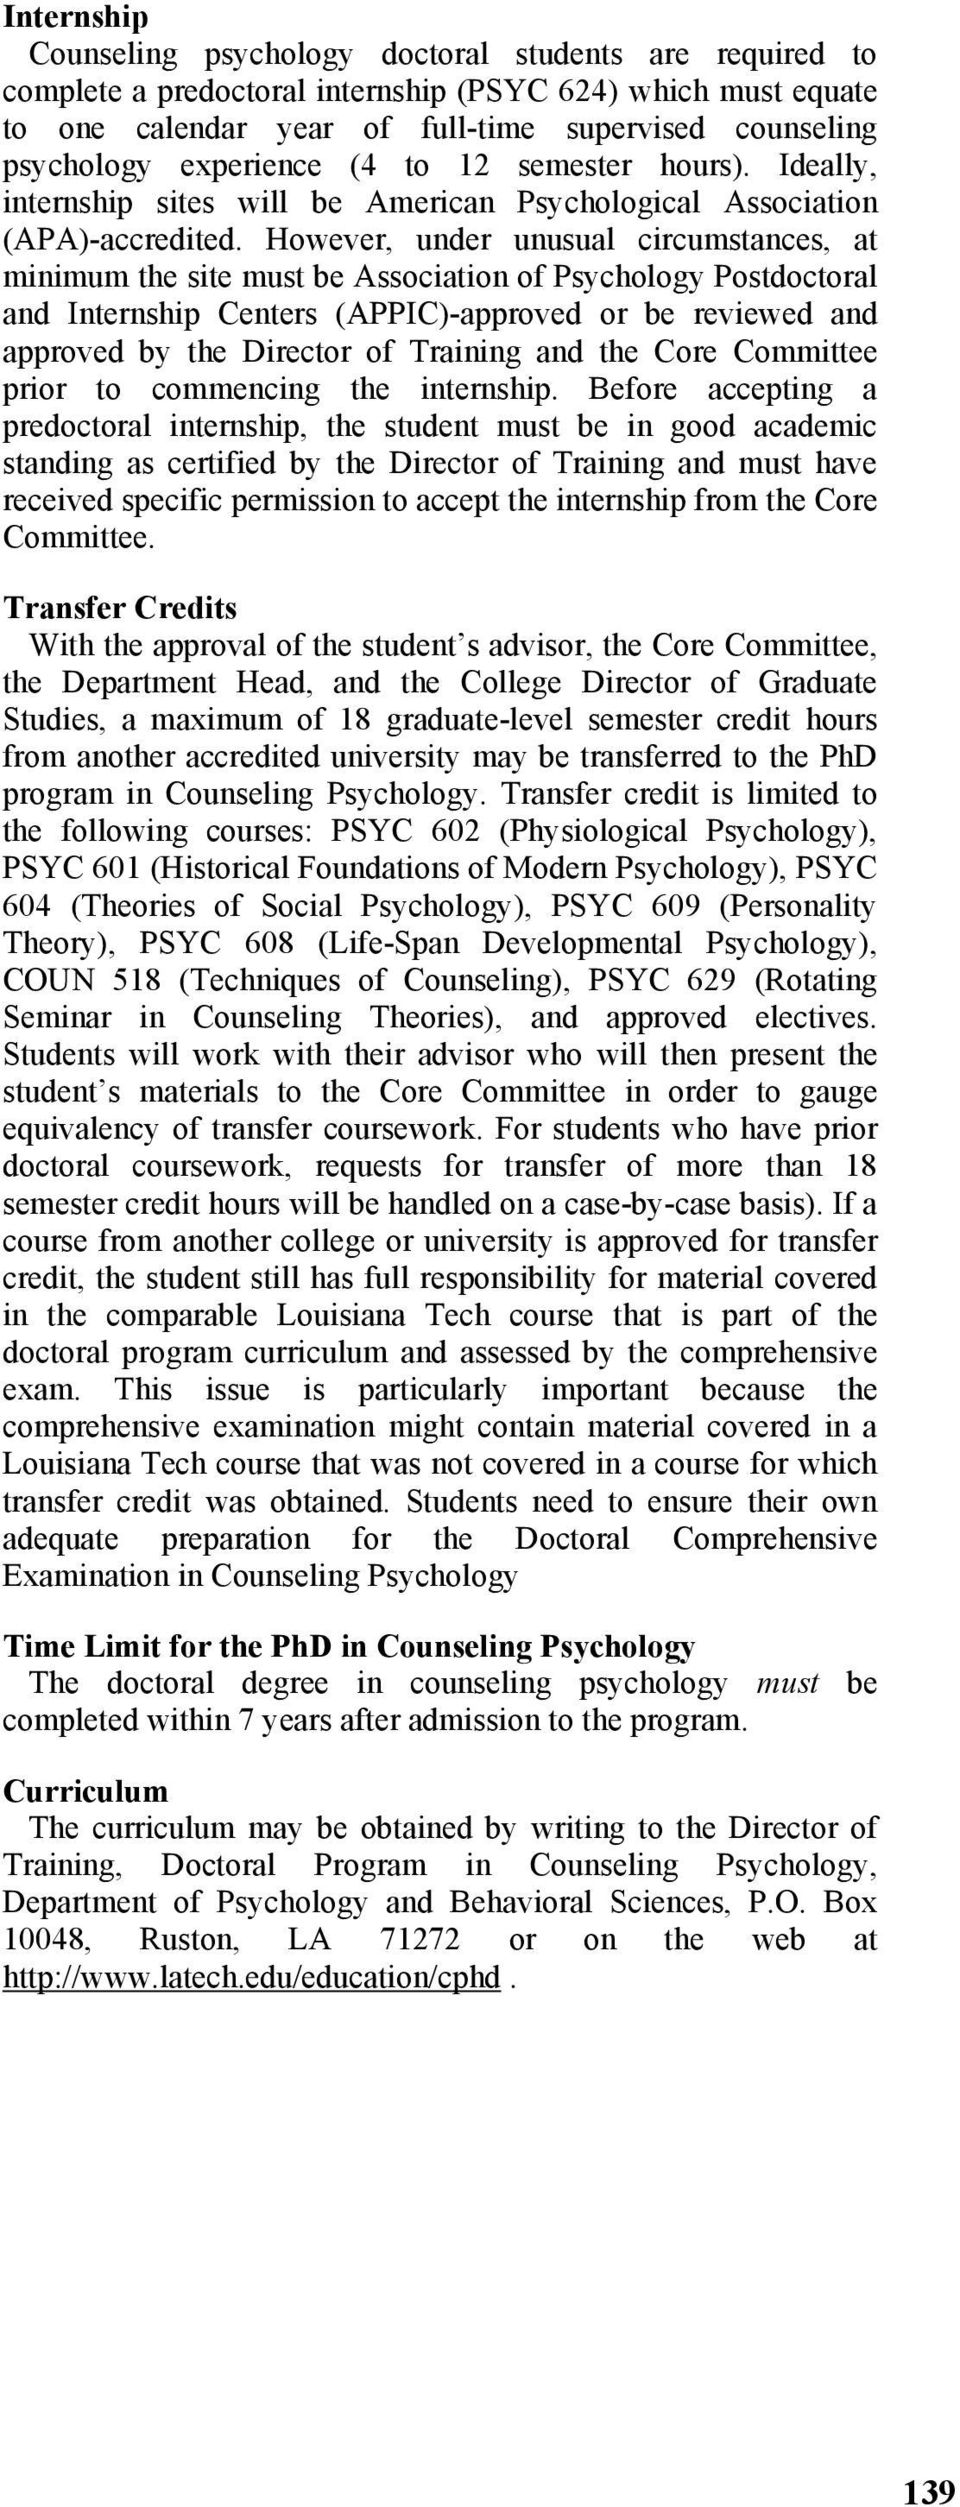 However, under unusual circumstances, at minimum the site must be Association of Psychology Postdoctoral and Internship Centers (APPIC)-approved or be reviewed and approved by the Director of